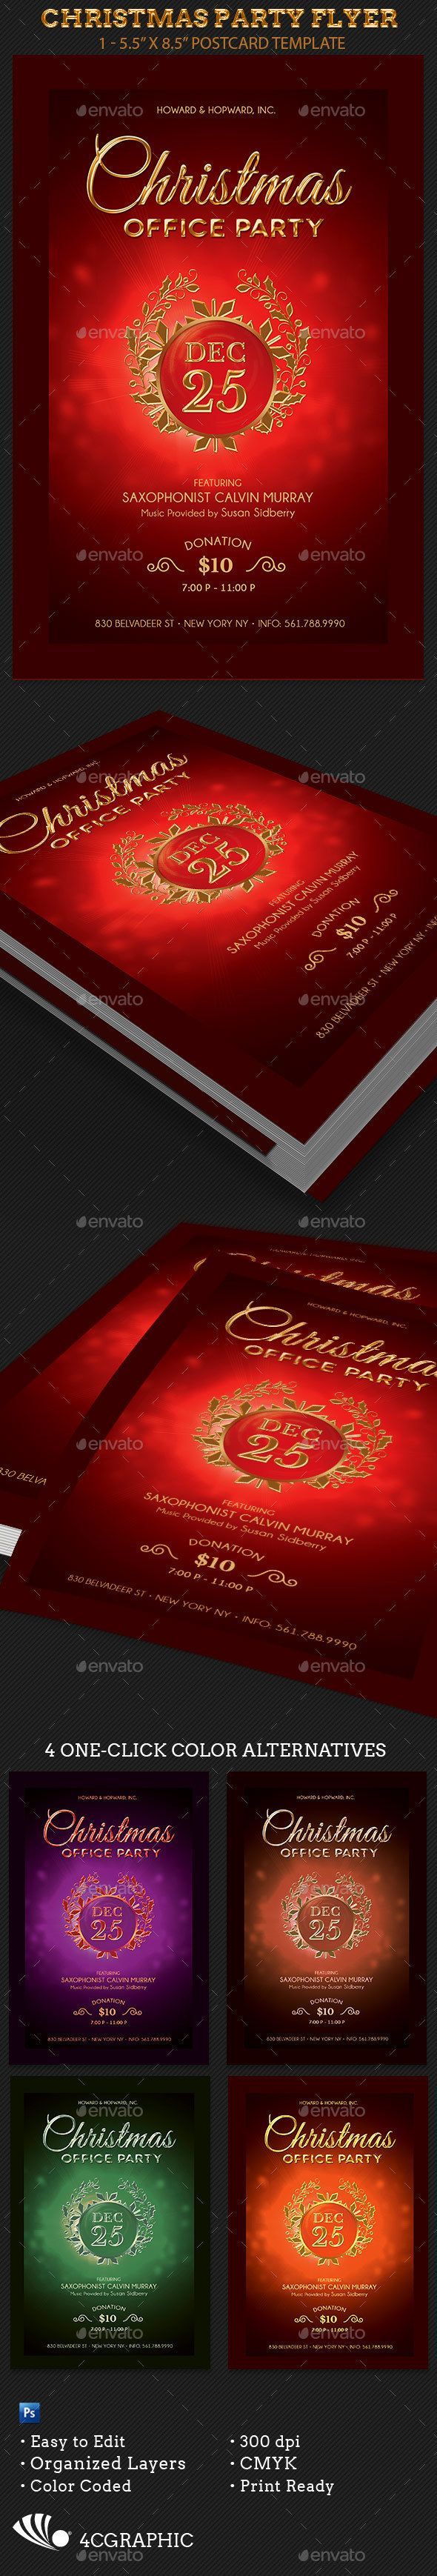 best images about christmas print templates christmas party flyer template